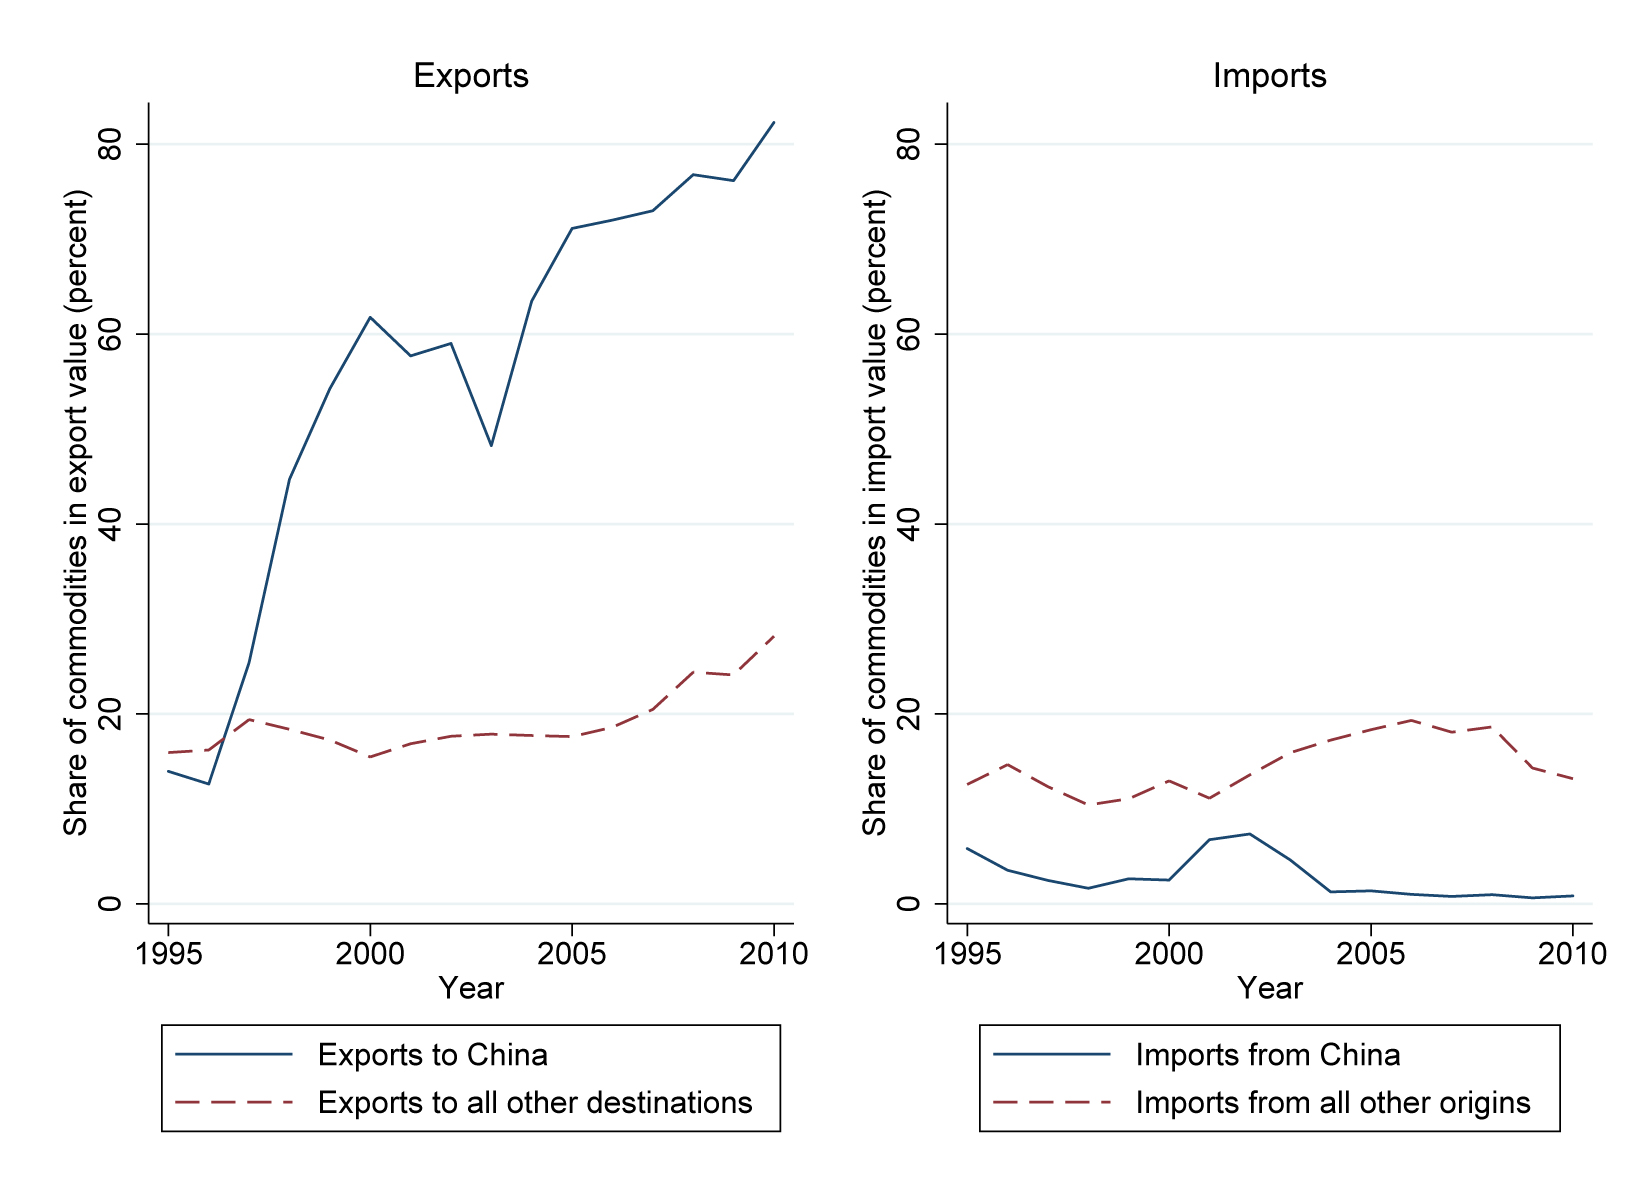 Figure 2: Share of commodities in trade of Brazil. 'Commodities' include products of the agricultural, forestry, fisheries/aquaculture and mining sectors. Trade data is from CEPII BACI. Credit: Francisco Costa